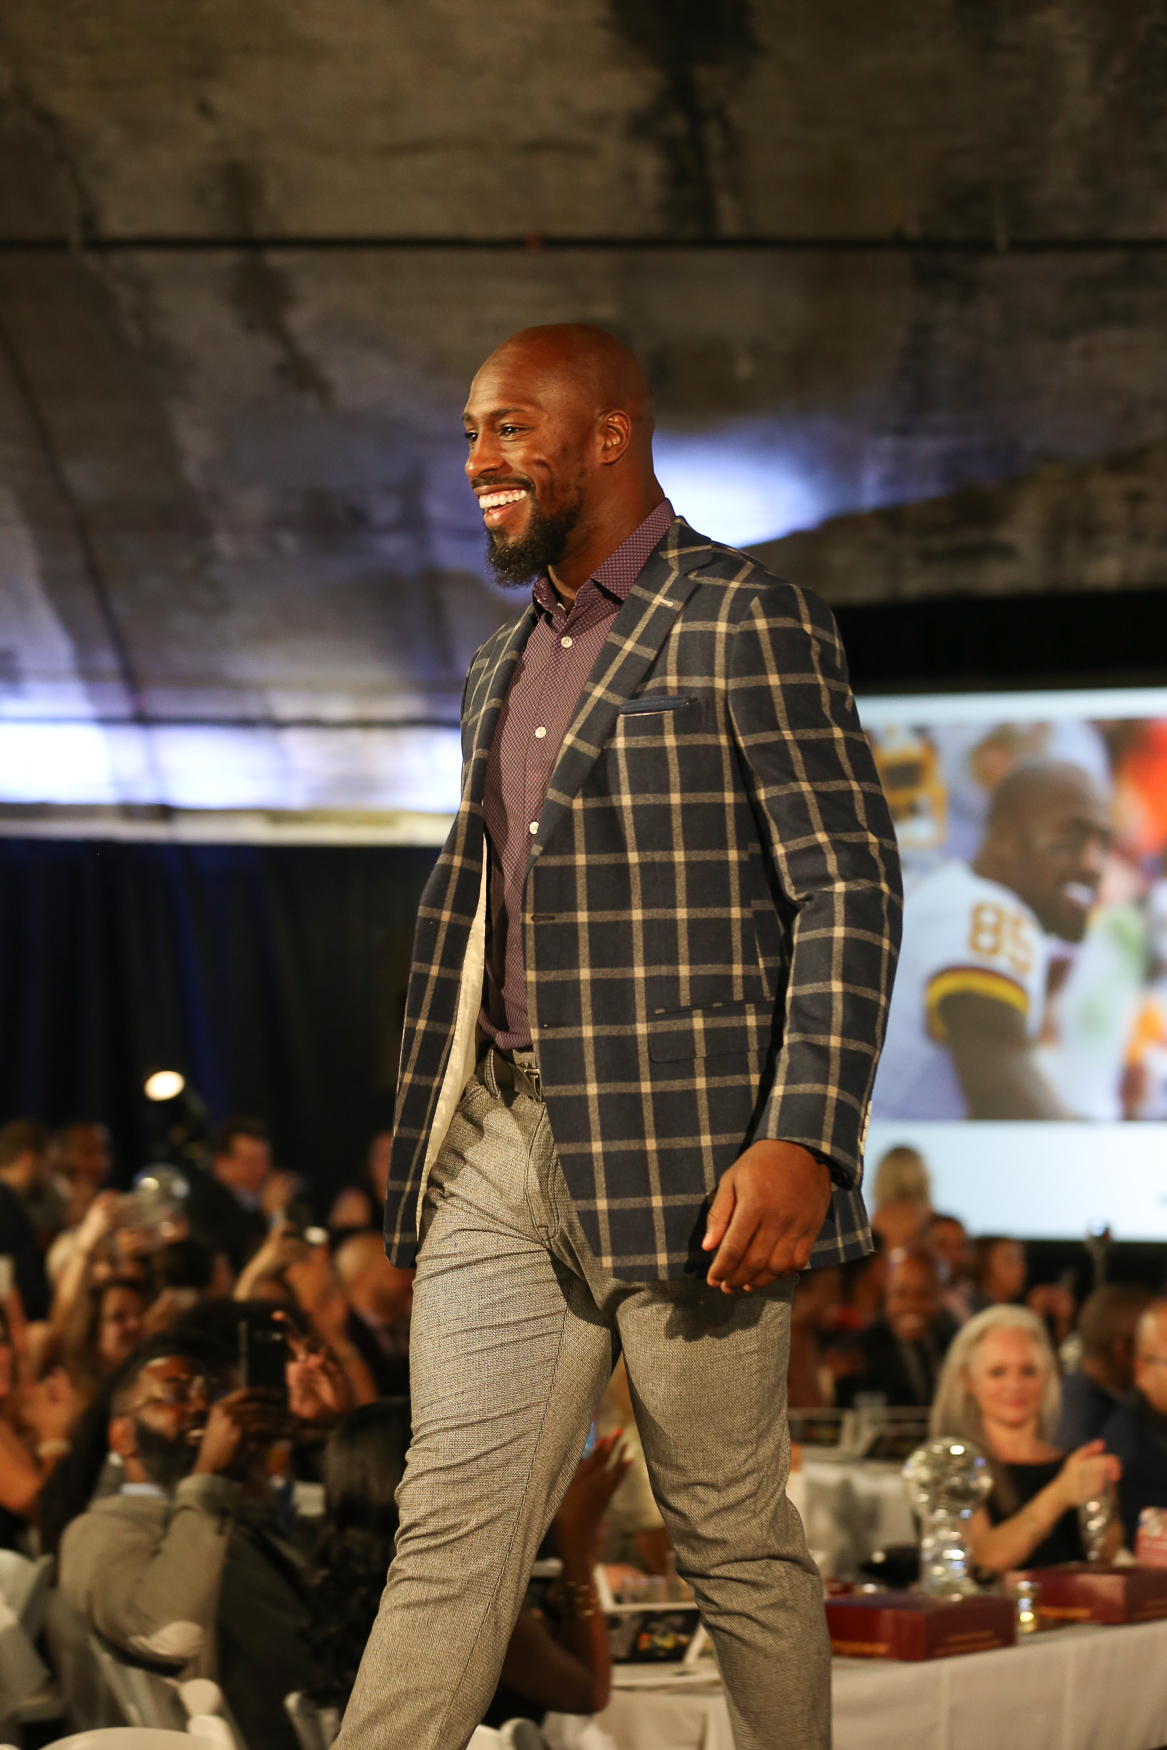 Vernon Davis of the Washington Redskins. (Amanda Andrade-Rhoades/DC Refined)